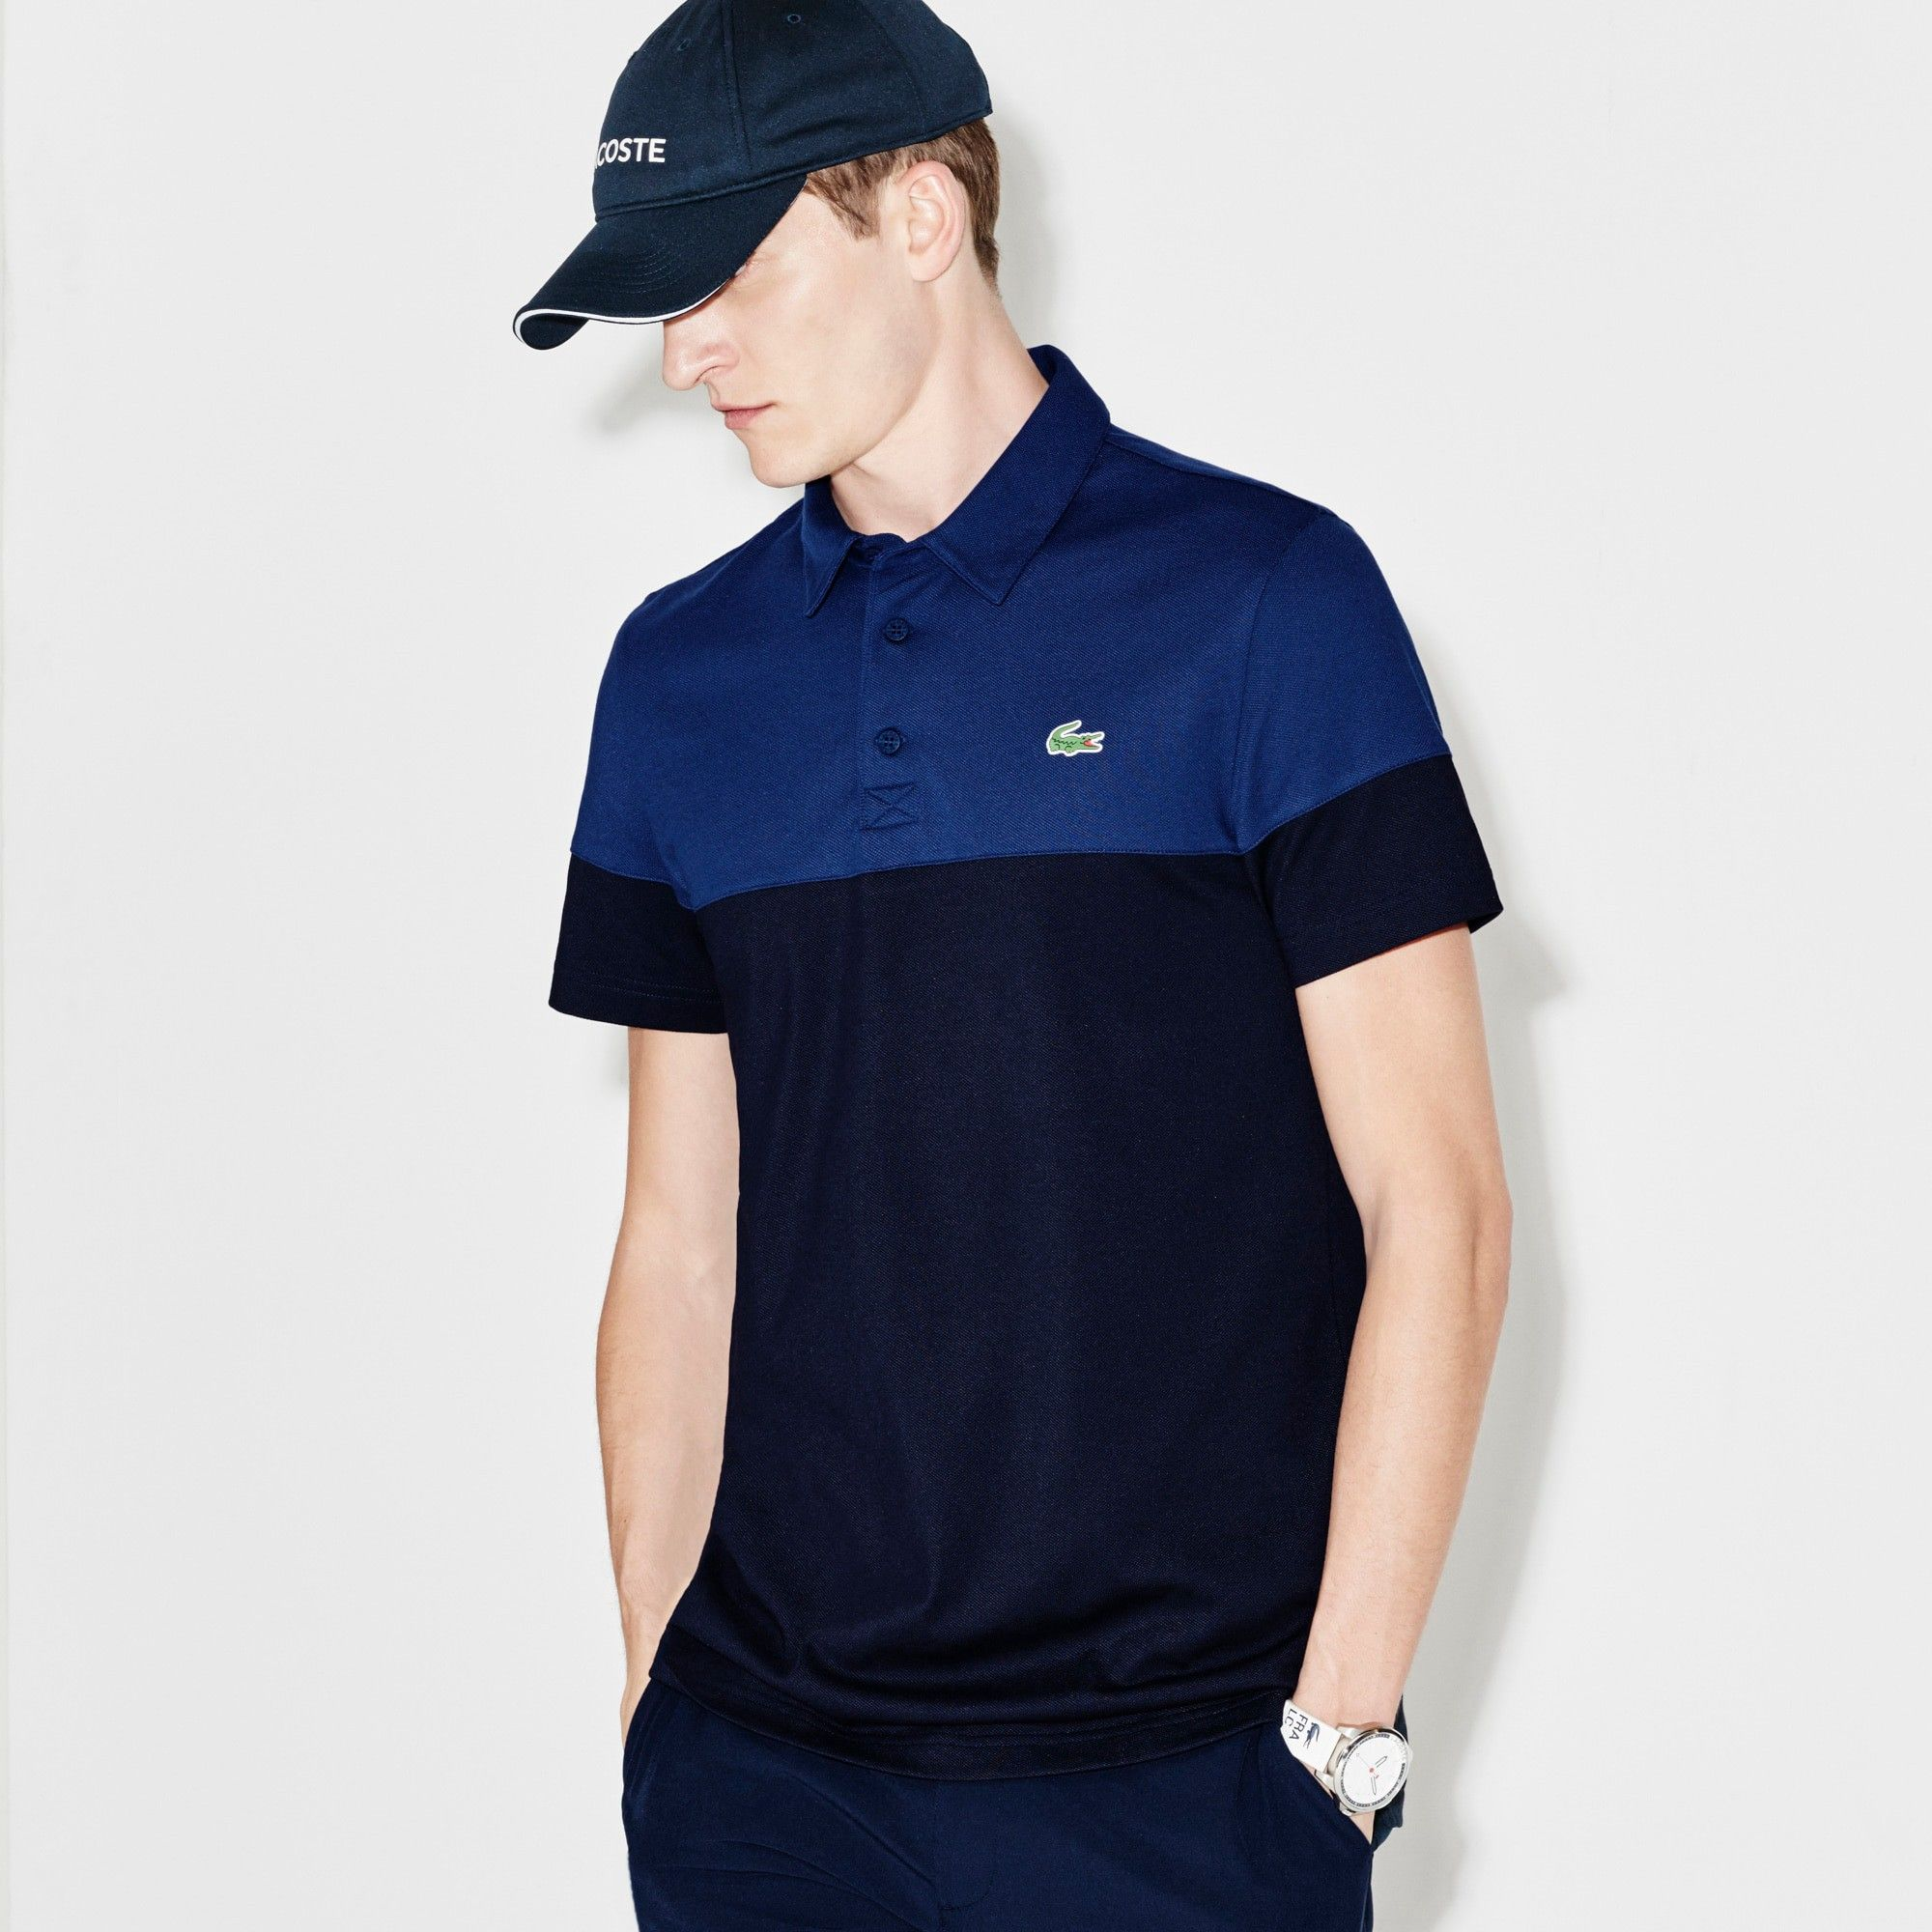 LACOSTE Men s Lacoste SPORT Golf Colorblock Technical Piqué Polo - navy  blue ocean.  lacoste  cloth   0875e30a1b69